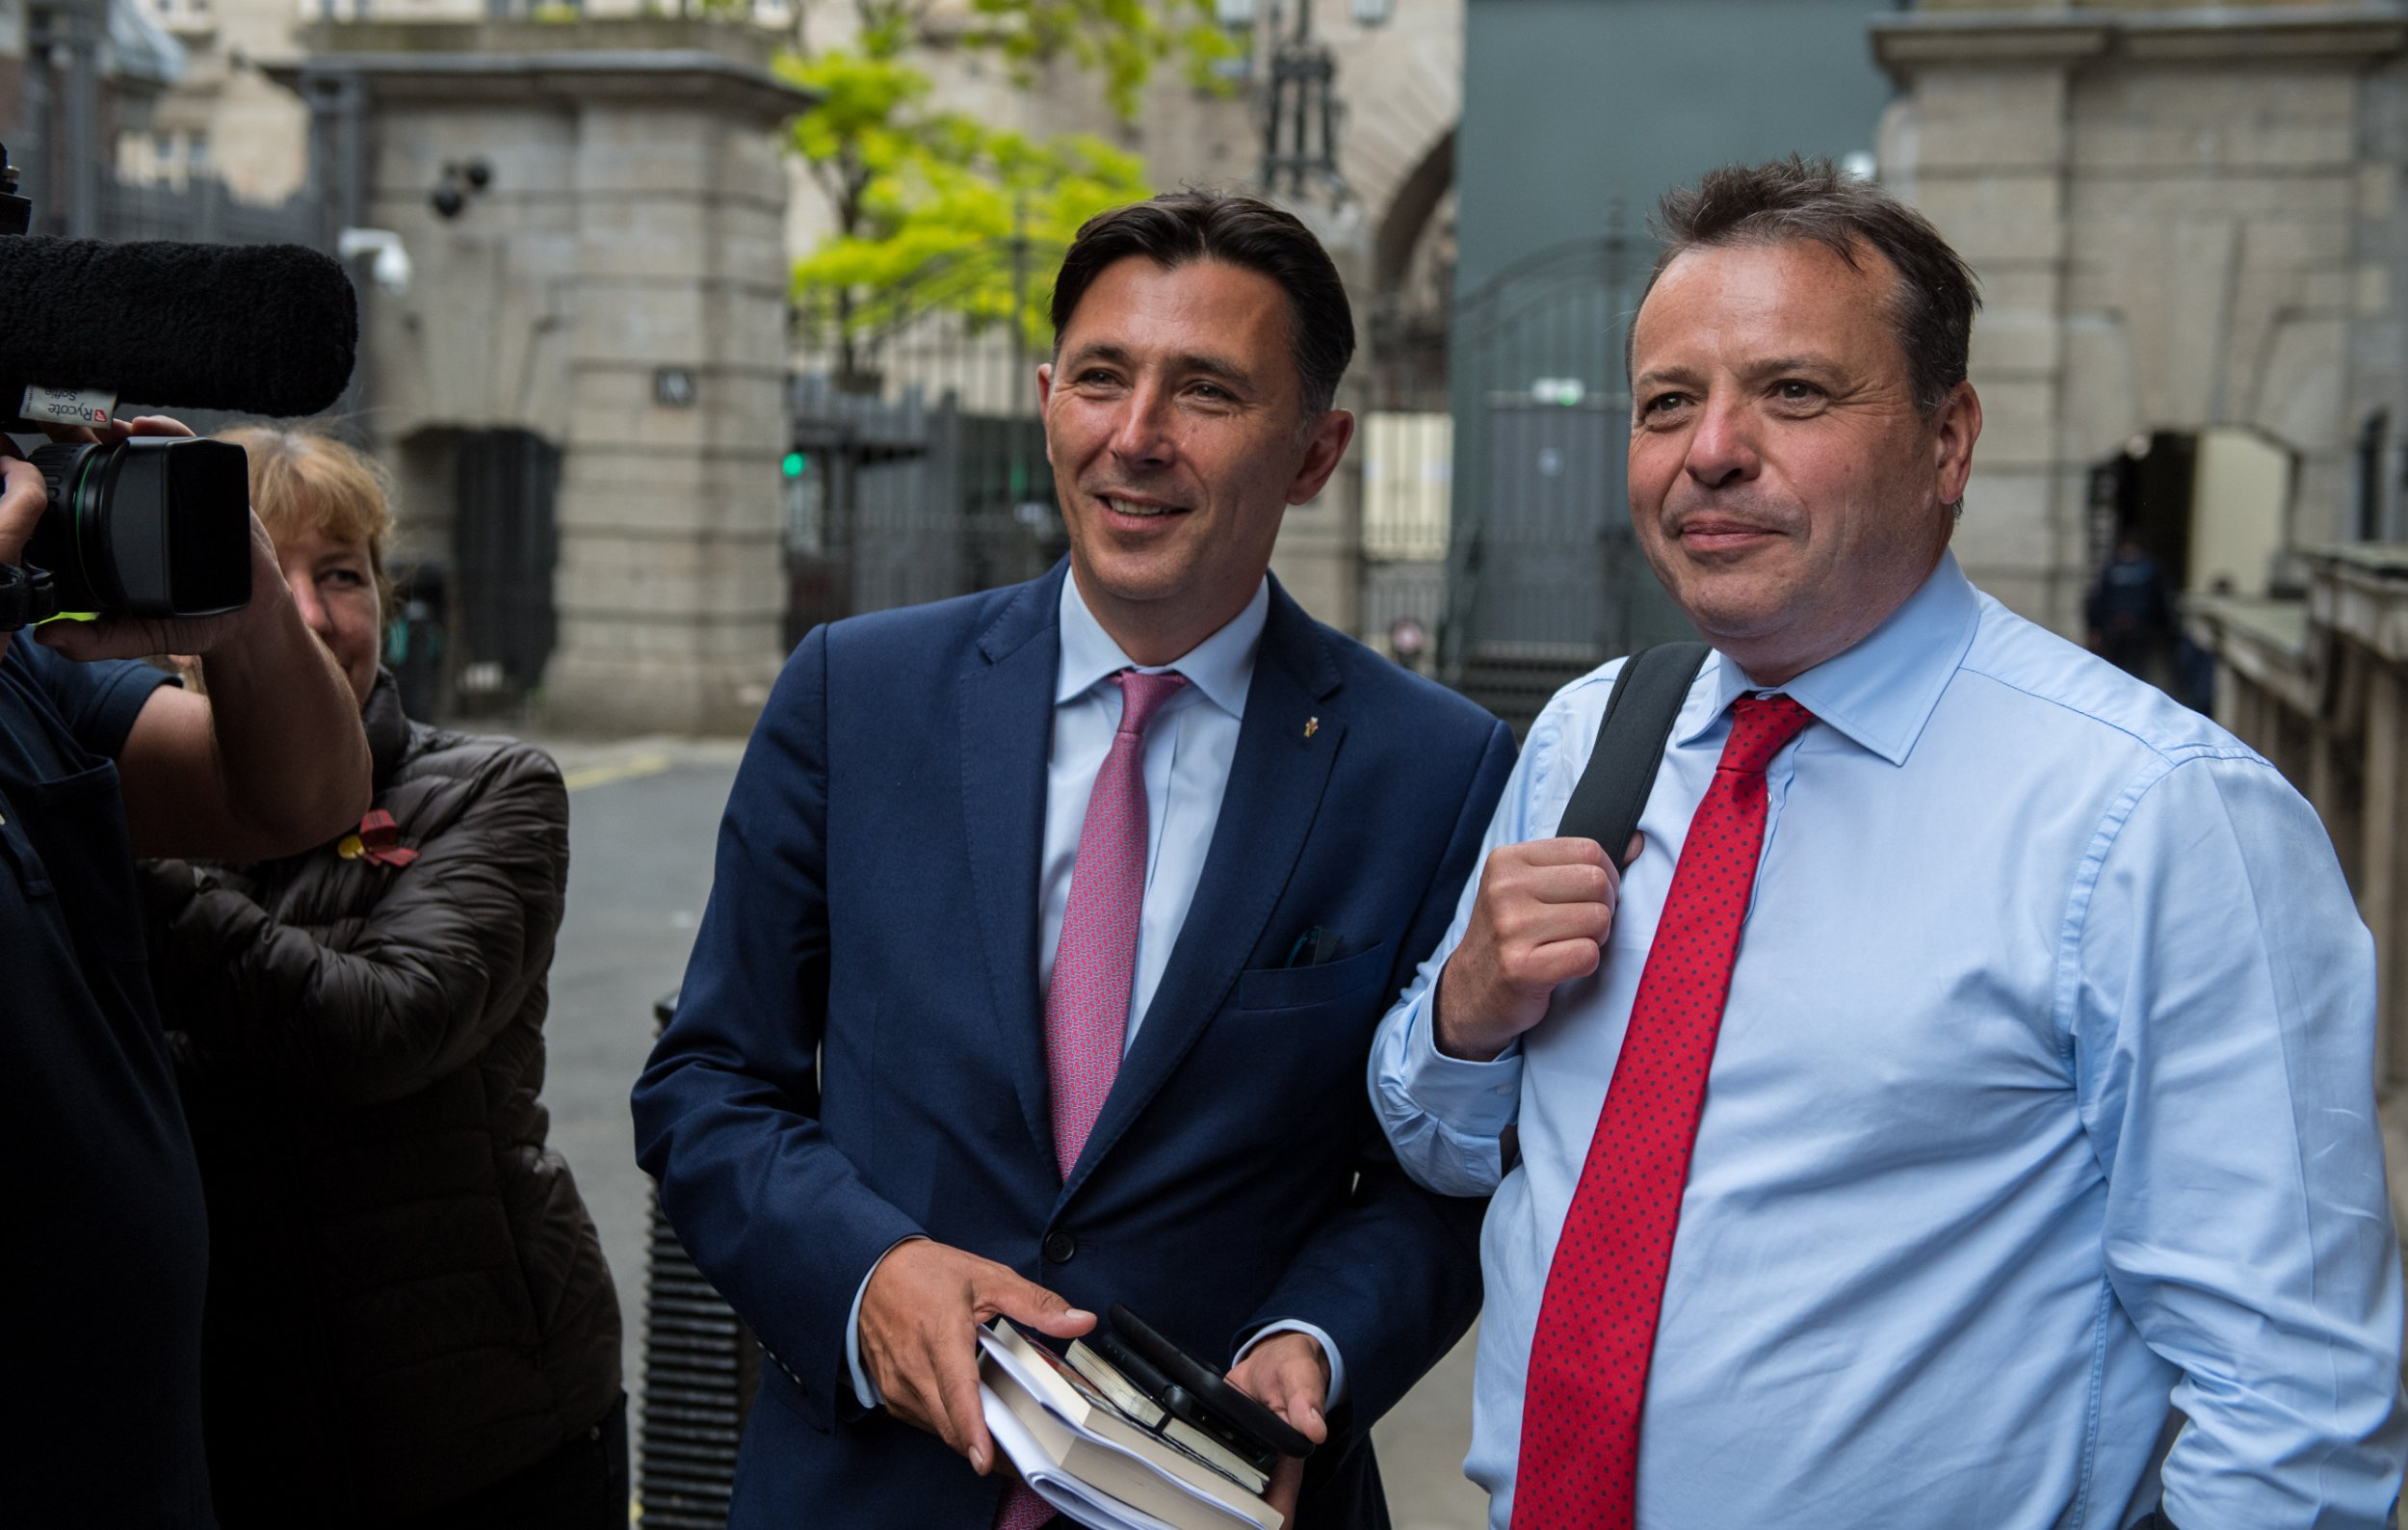 LONDON, ENGLAND - JUNE 12: Arron Banks (R) and Andy Wigmore (L) leave Portcullis House on June 12, 2018 in London, England. Leave EU backer Arron Banks appeared before the fake news select committee to answer questions. He arrived at Portcullis House with Andy Wigmore. (Photo by Chris J Ratcliffe/Getty Images)